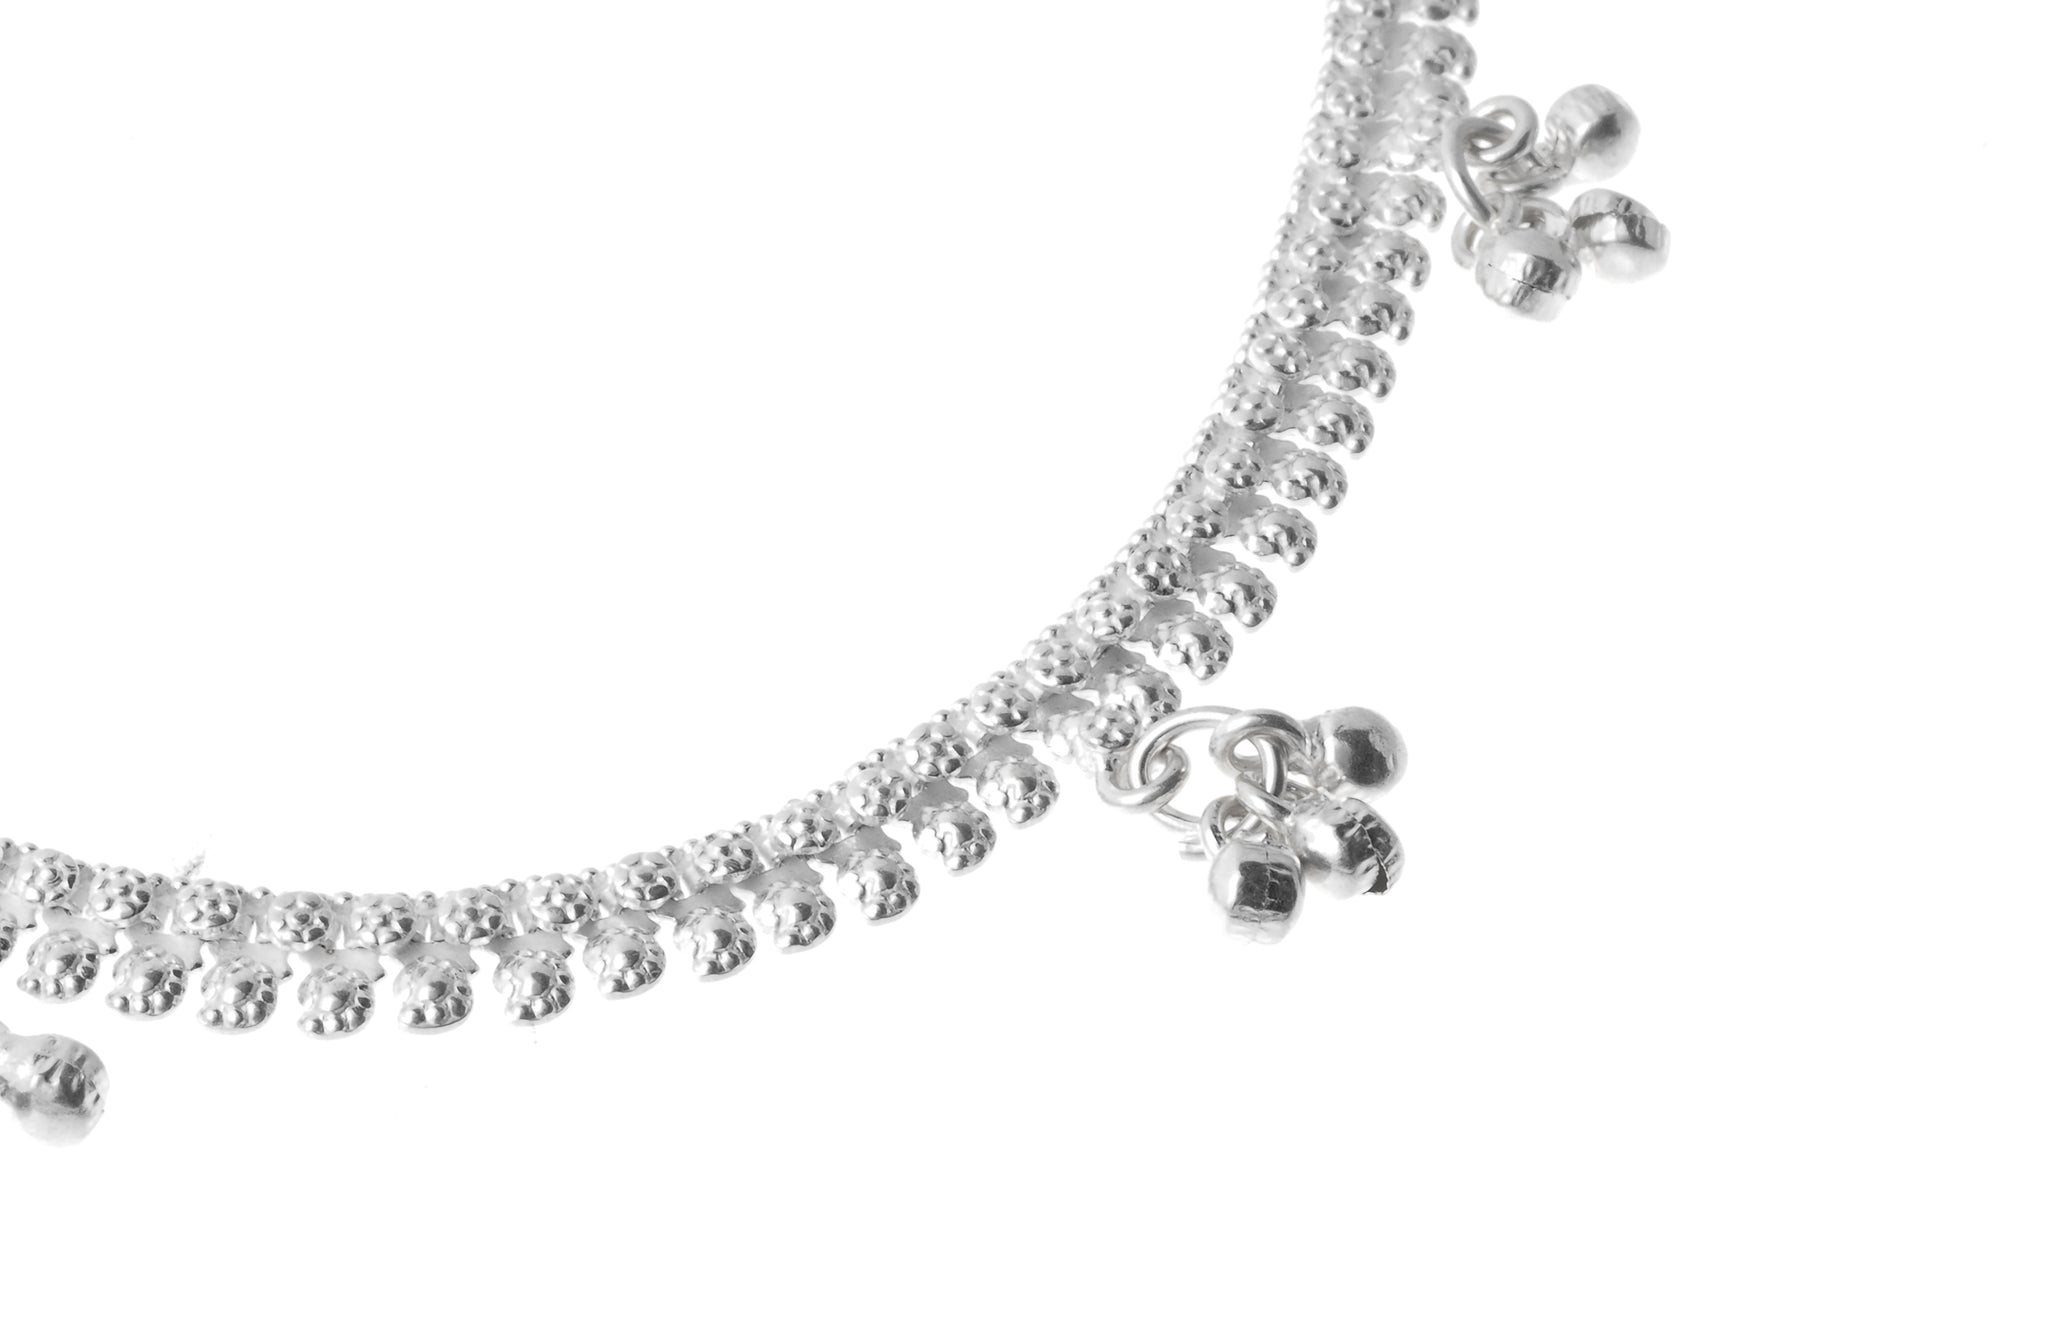 Silver Anklets with Ghughri Bell Charms A-7160 - Close Up_1